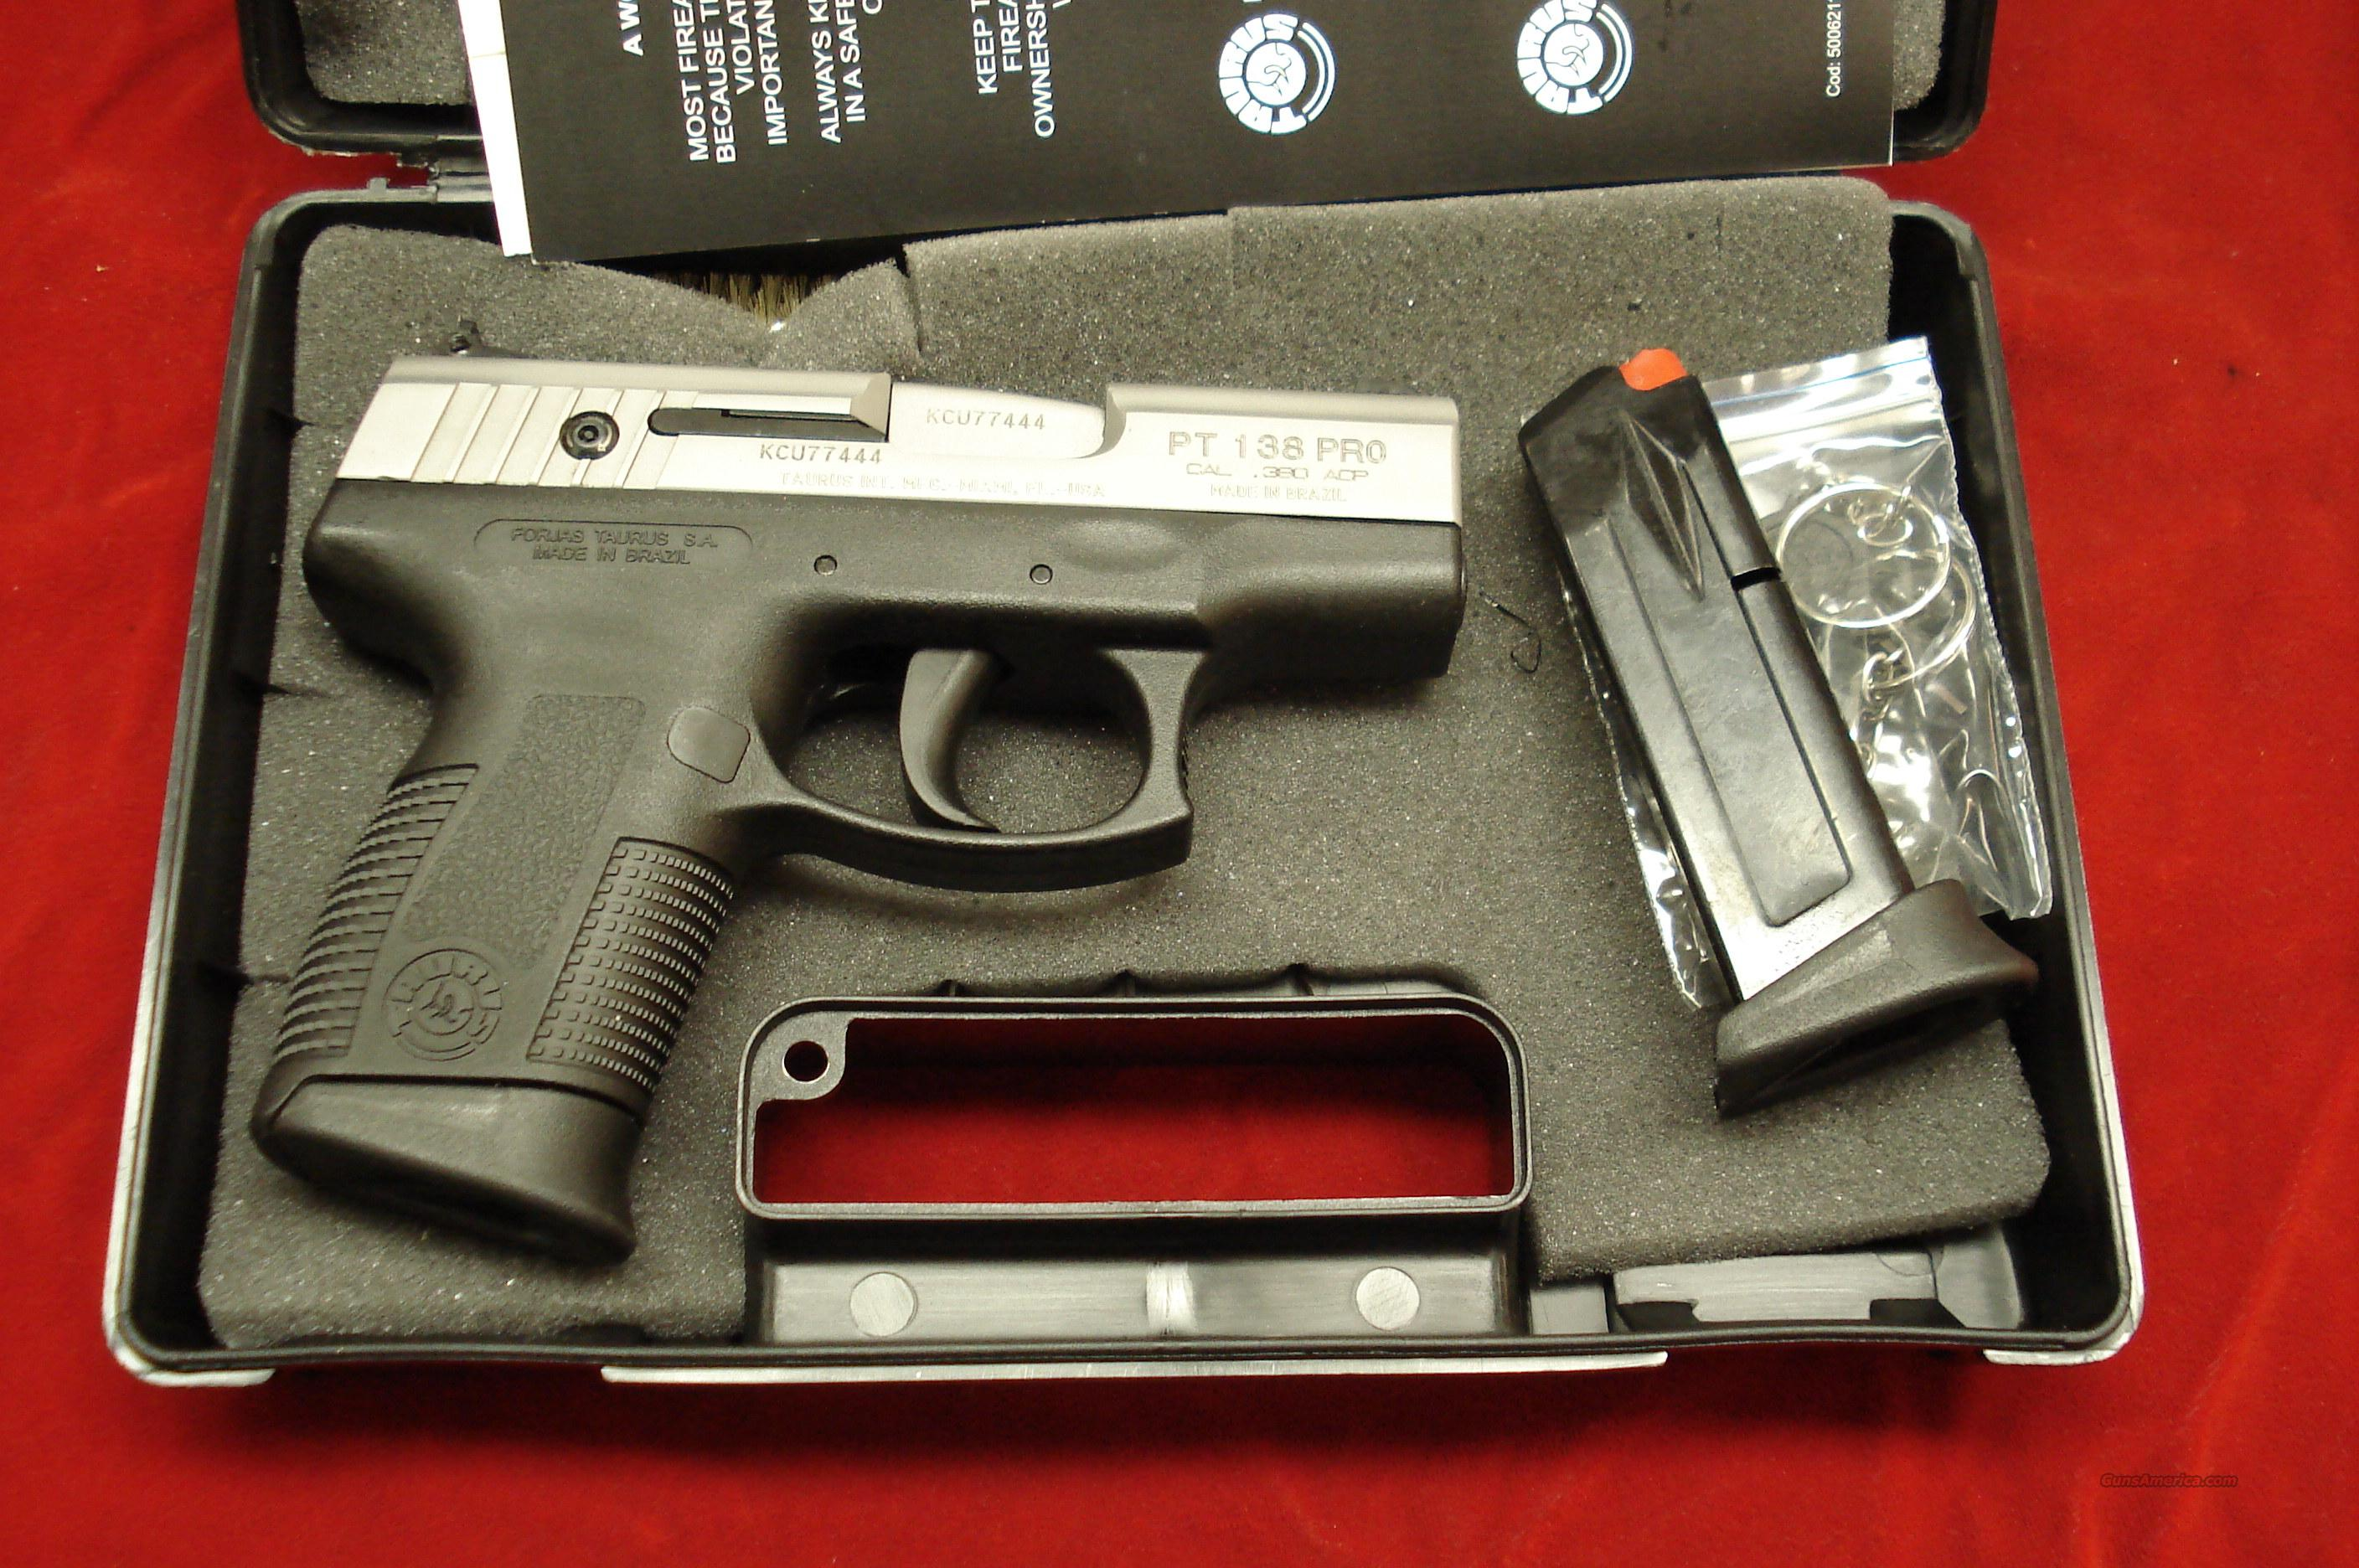 TAURUS PT138 STAINLESS MILLENNIUM PRO 380 CAL. NEW   Guns > Pistols > Taurus Pistols/Revolvers > Pistols > Polymer Frame